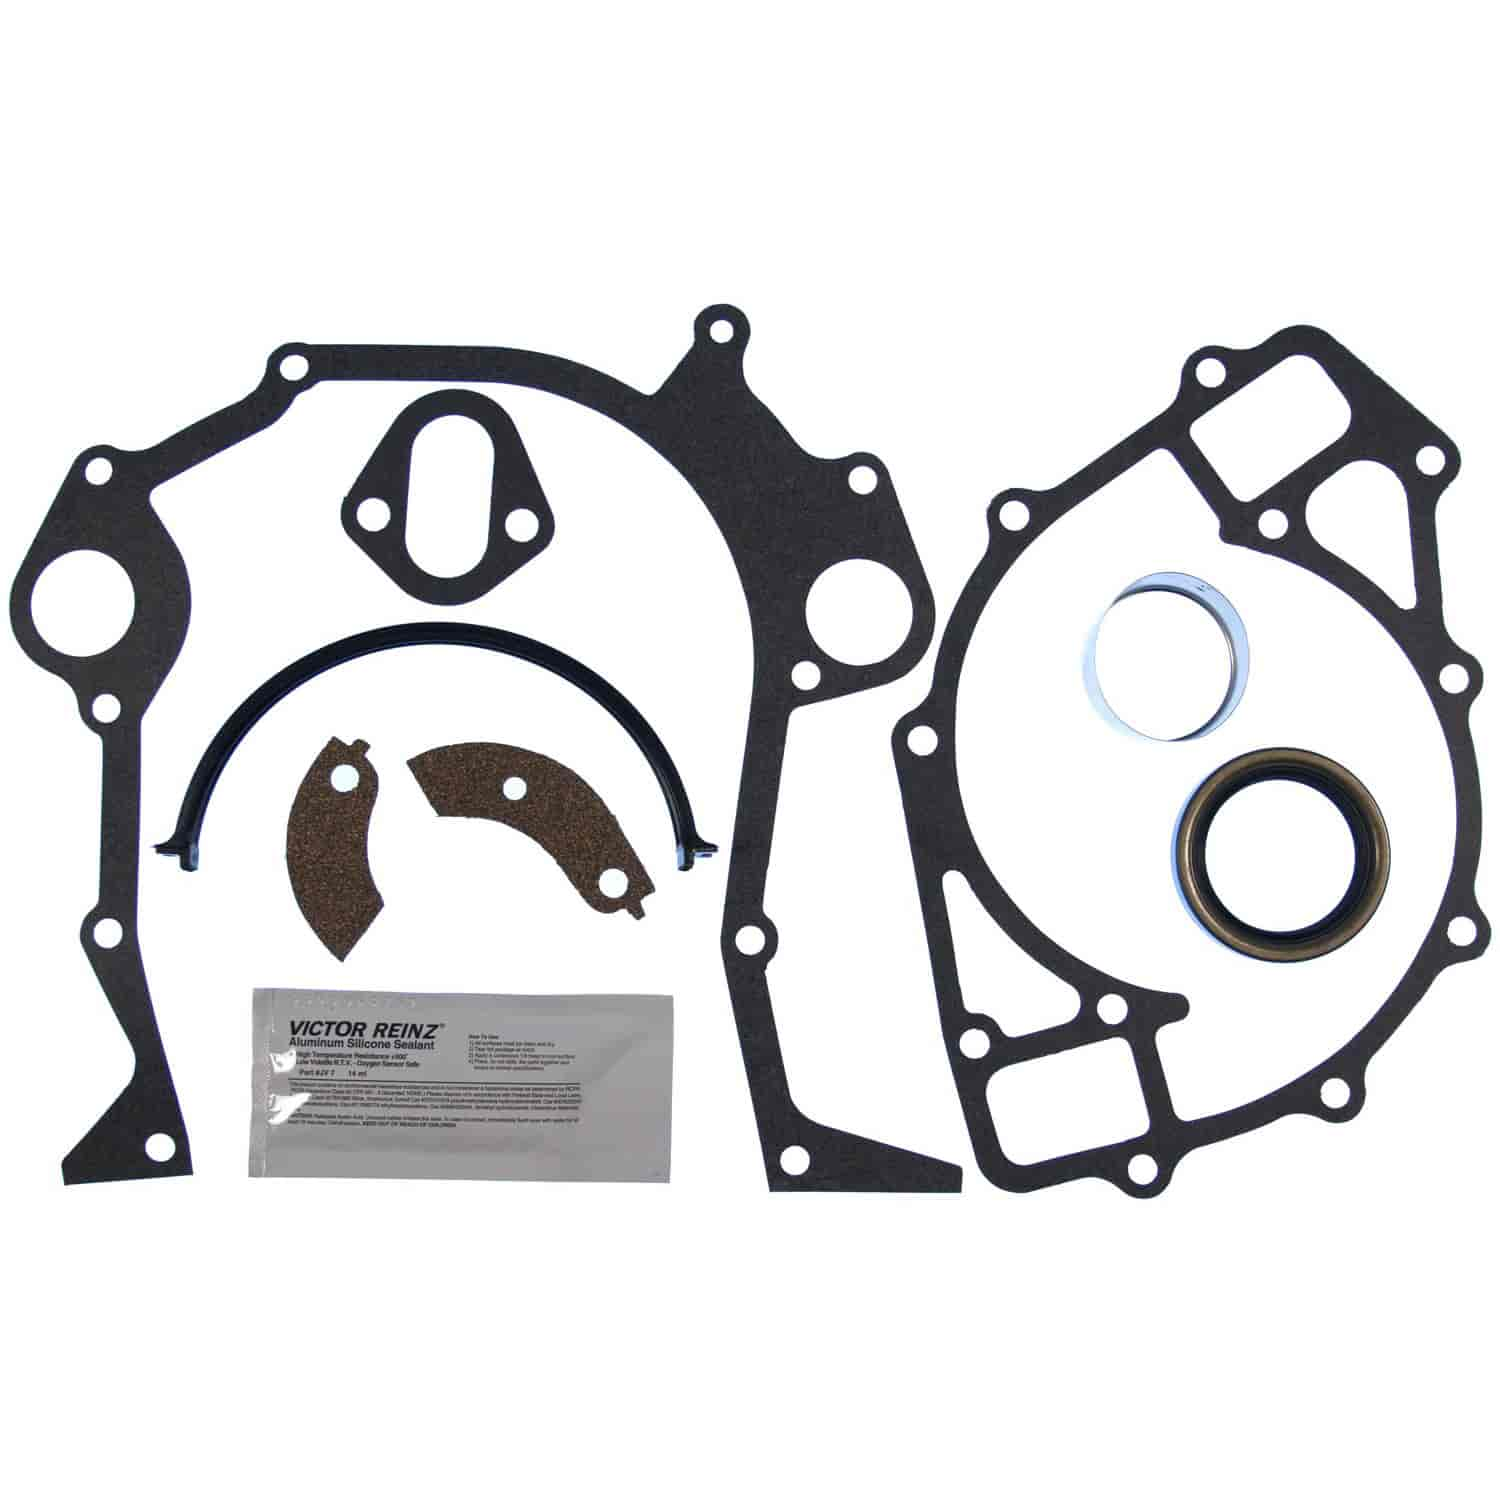 Clevite Mahle Jv932 Timing Cover Gasket Set 1968 1997 Big Block A 460 Ford Engine